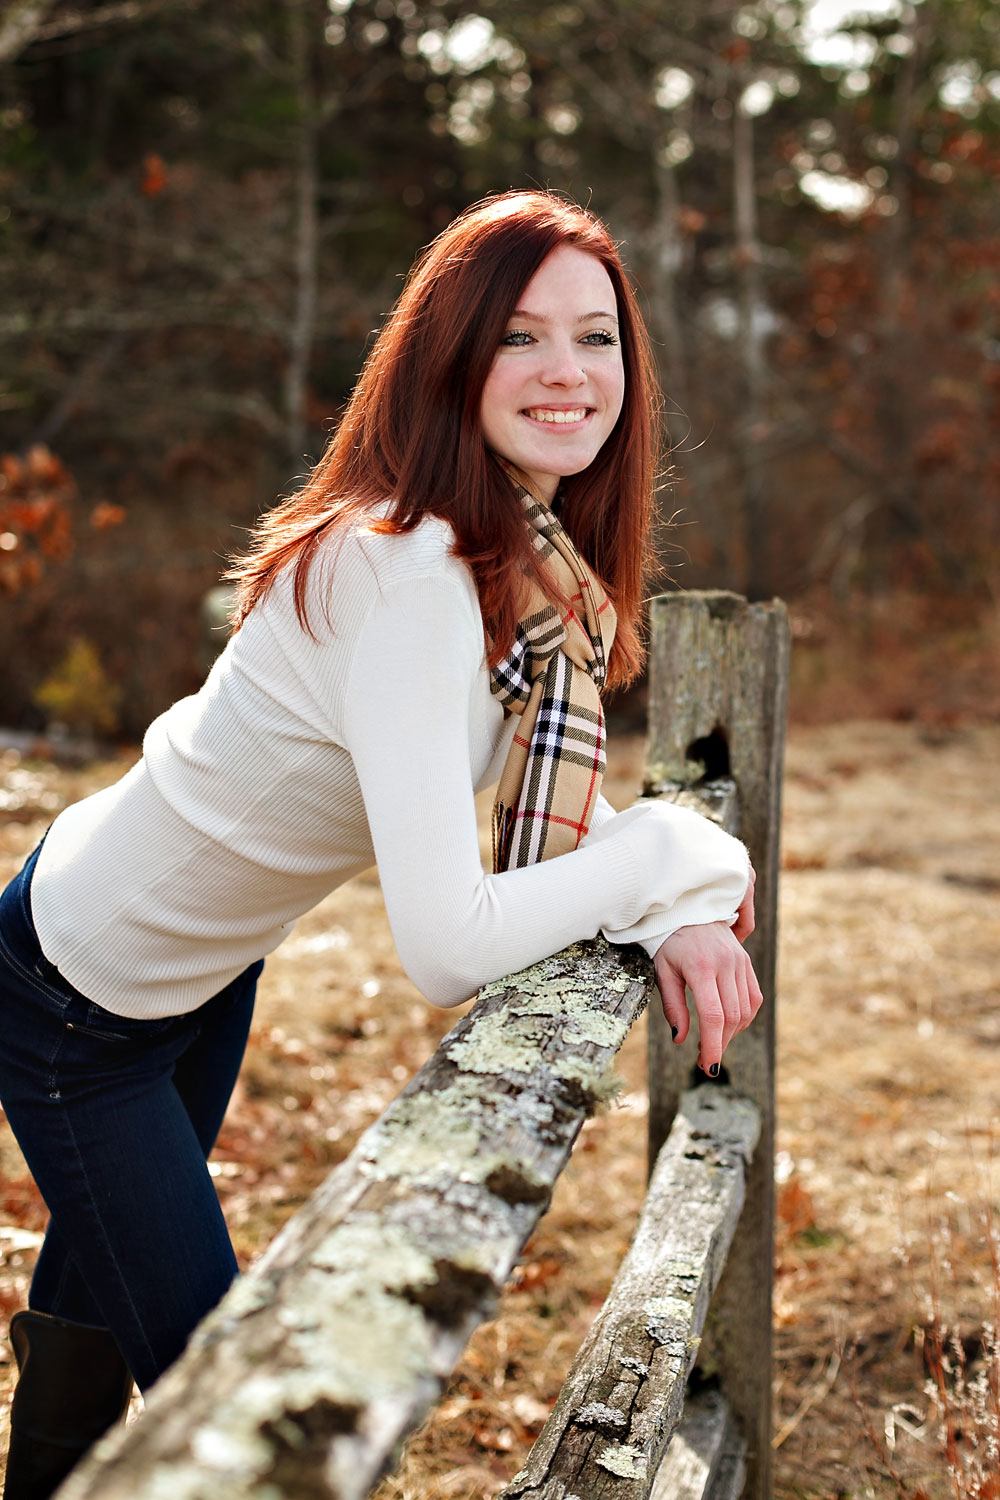 emily-highschool-senior-girl-norwood-massachusetts-fence-cranberry-bog-autumn-wareham-nicole-chaput-photography-001.jpg